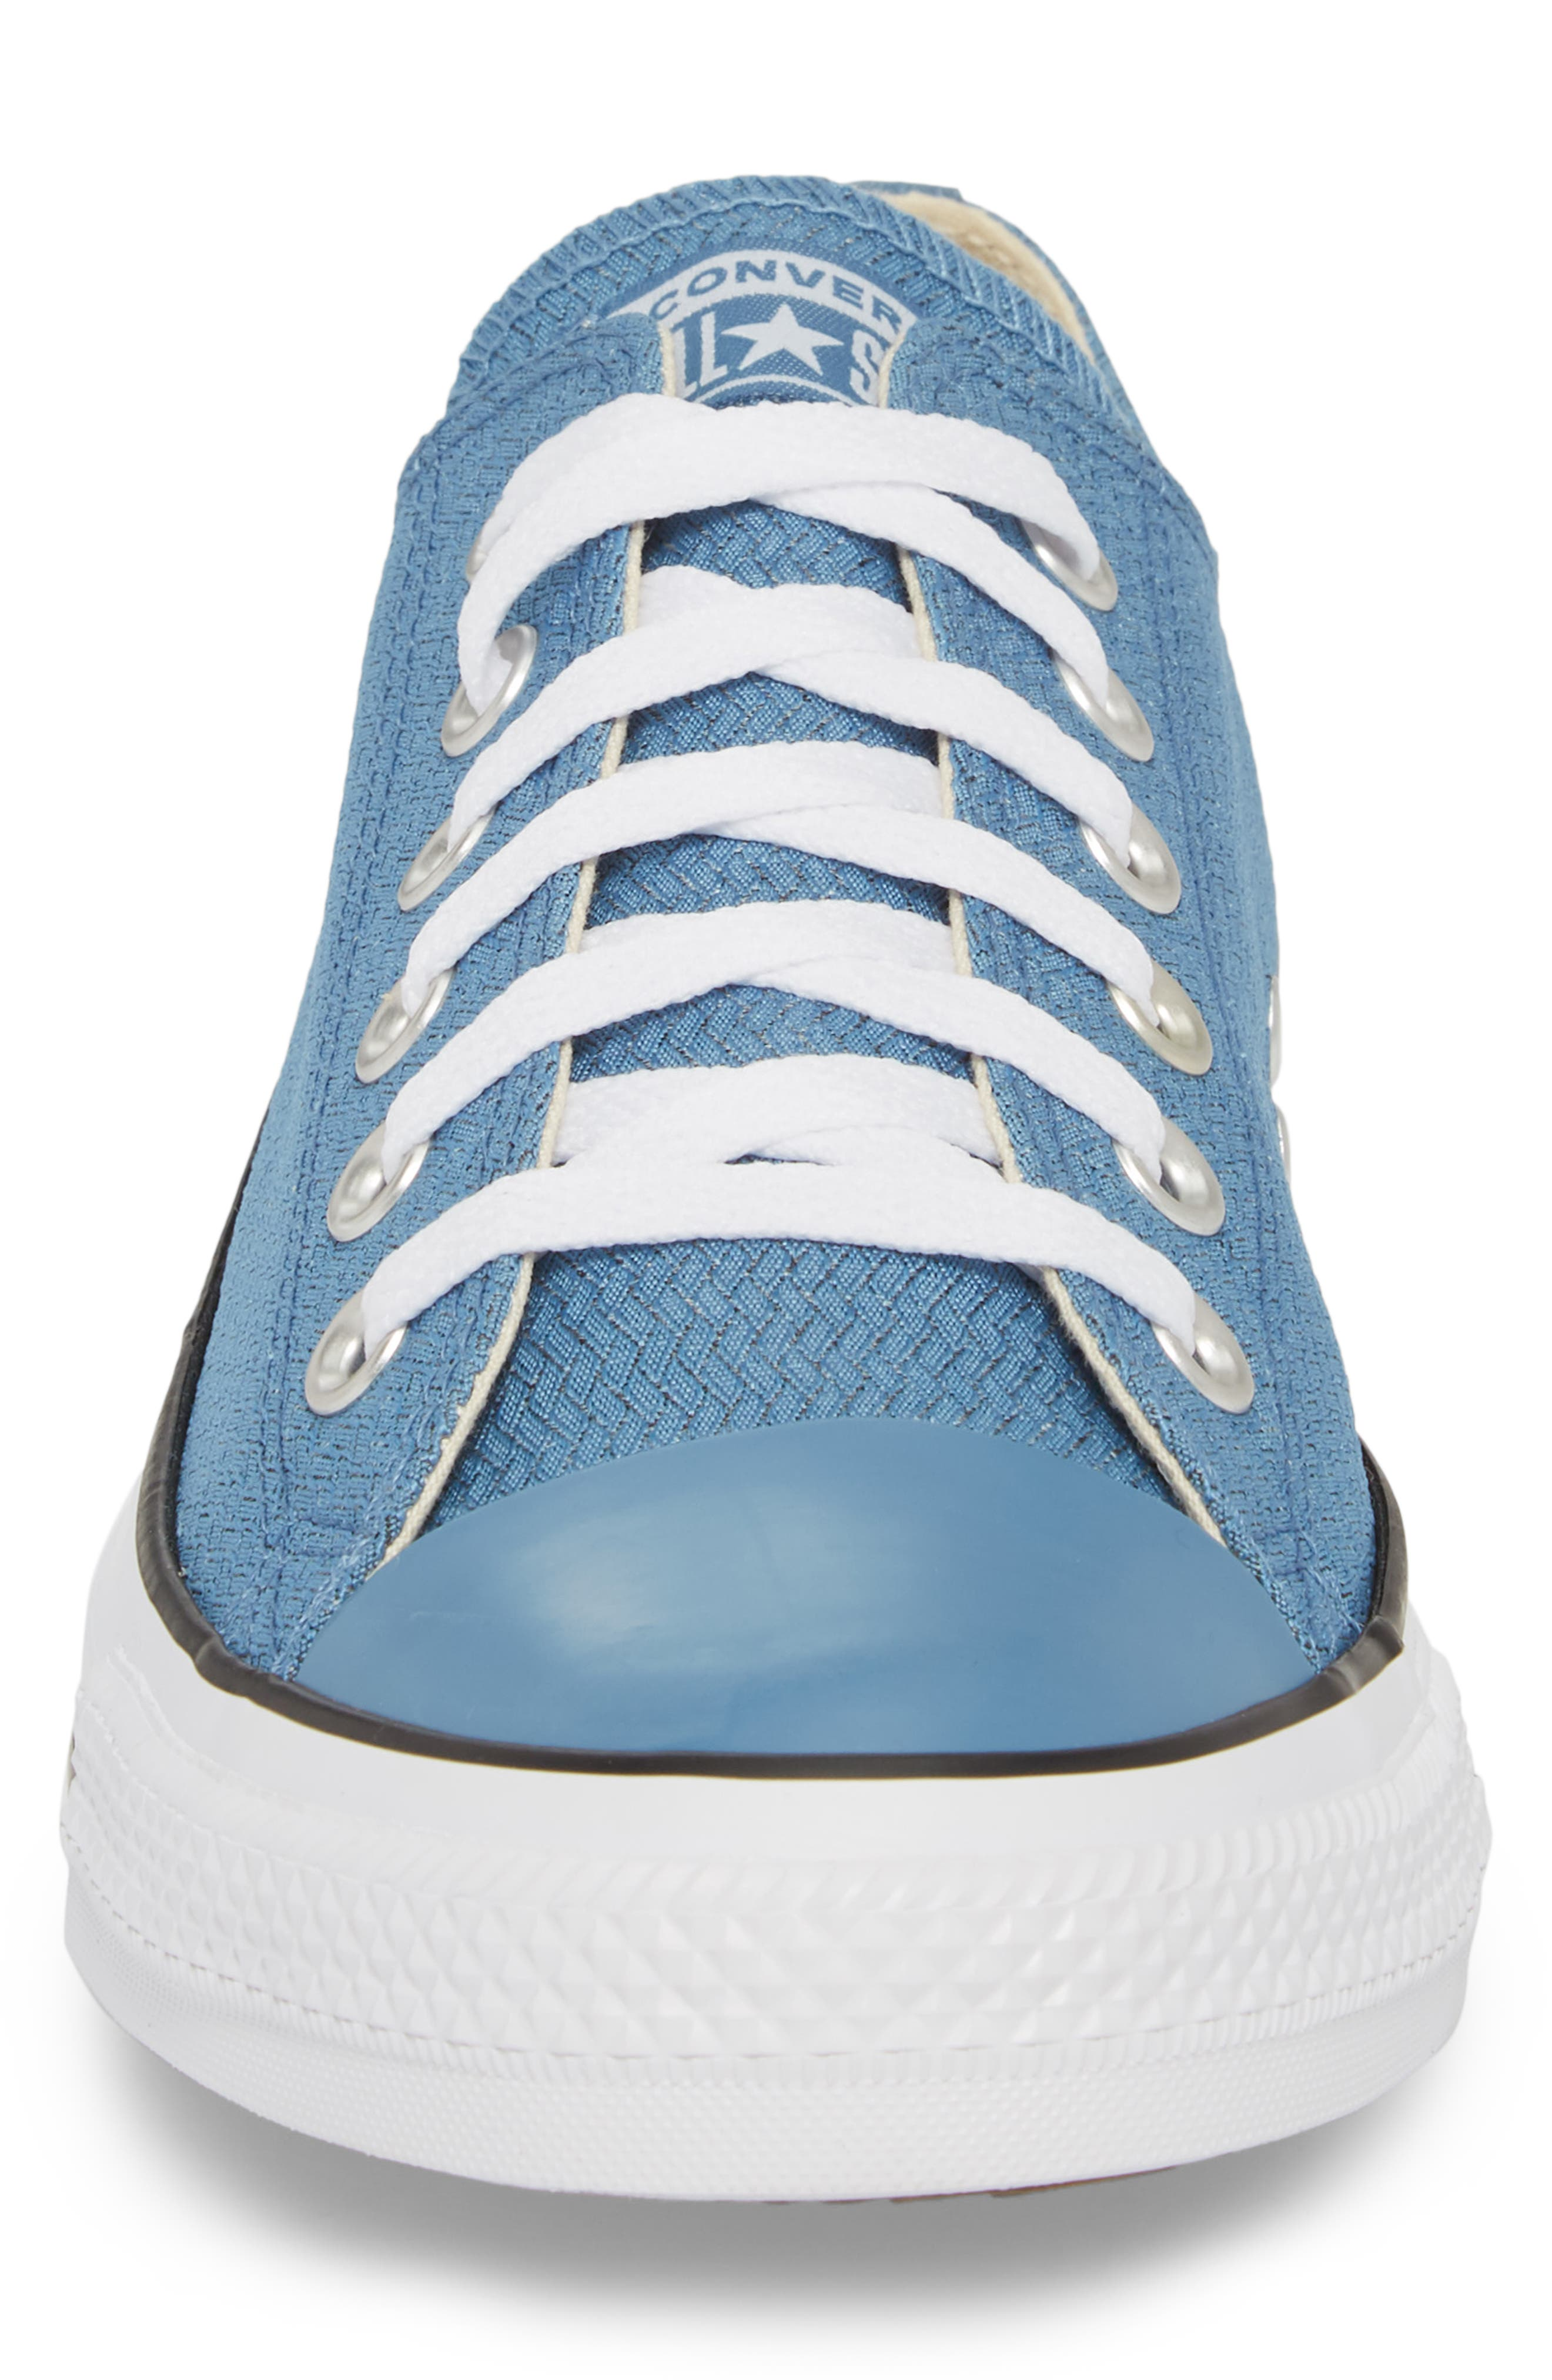 All Star<sup>®</sup> Ripstop Low Top Sneaker,                             Alternate thumbnail 4, color,                             Aegean Storm